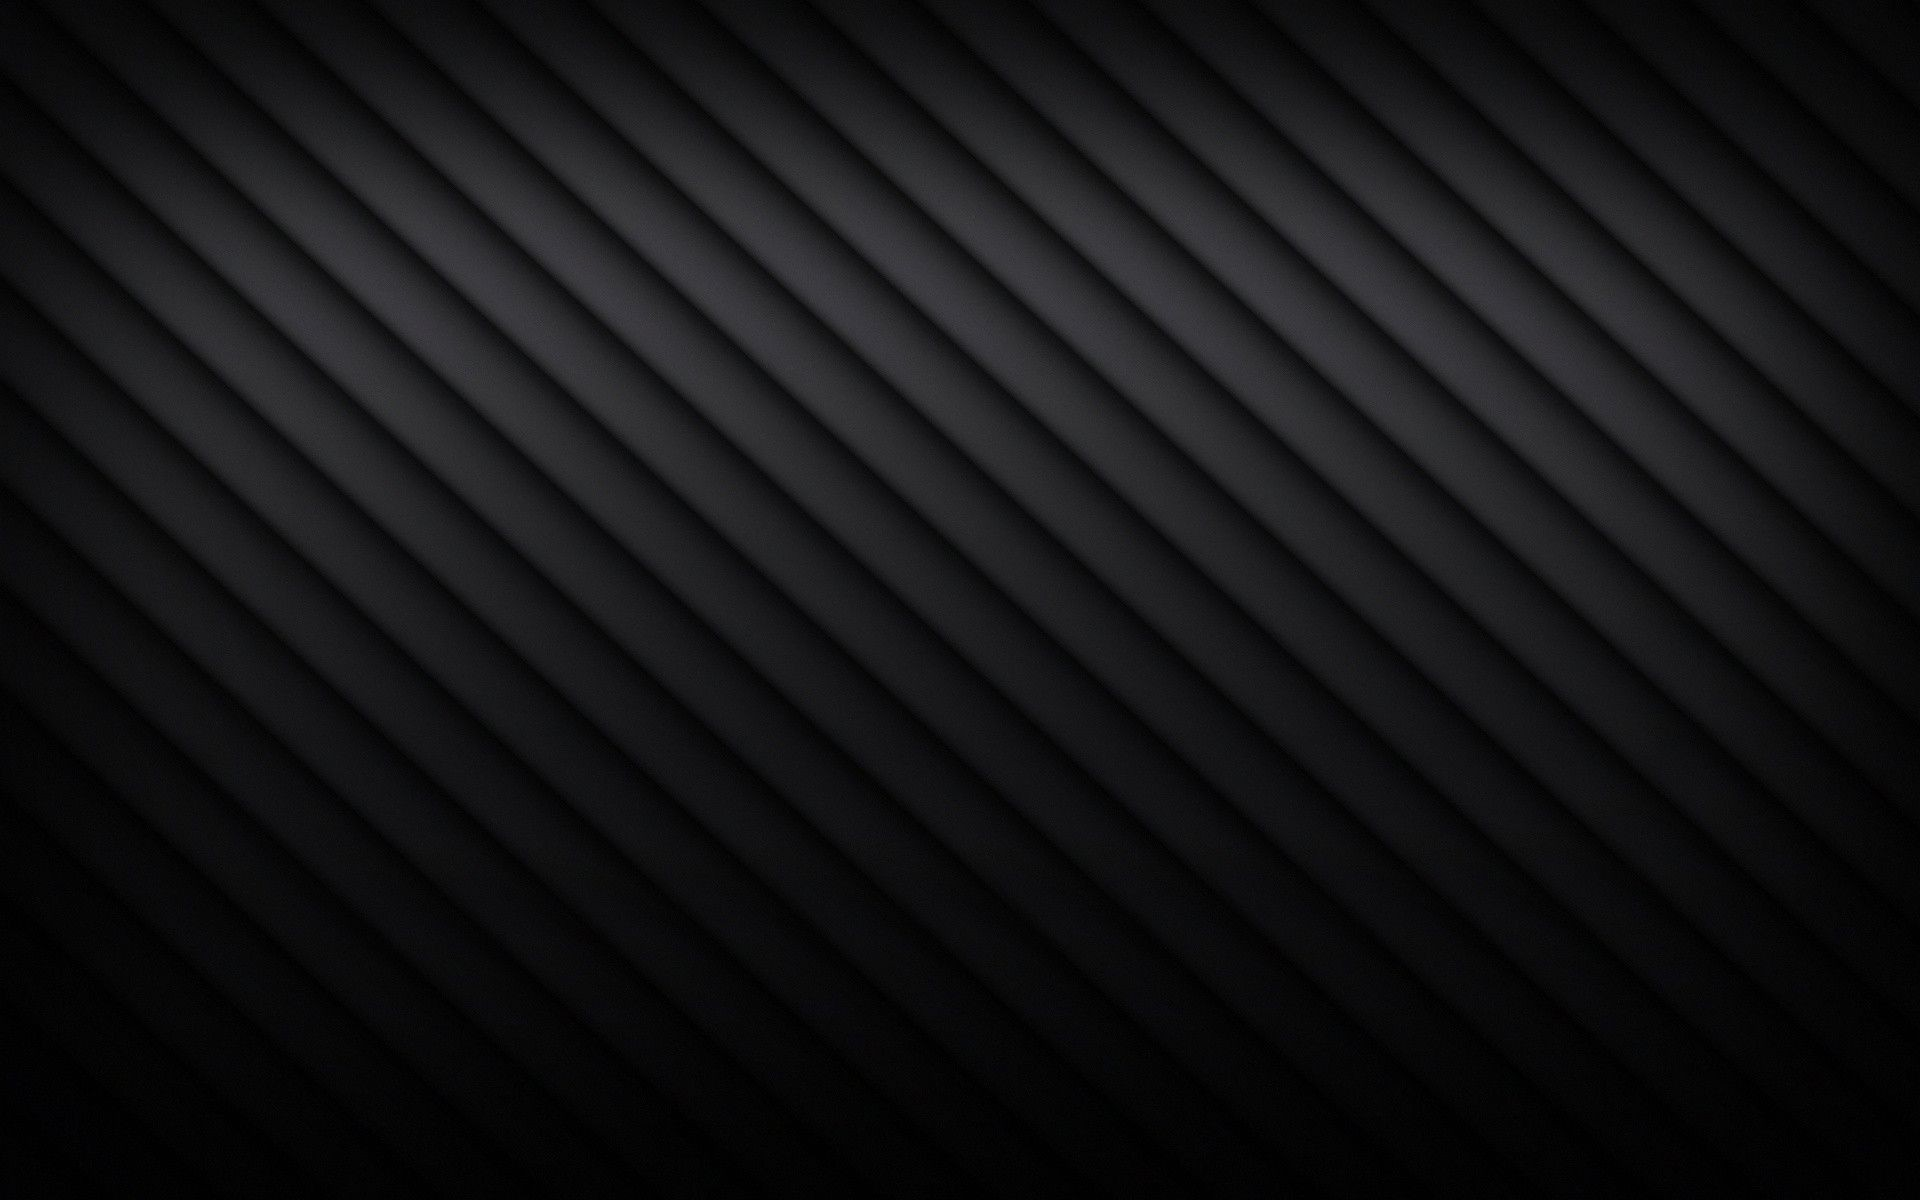 Black abstract wallpaper download free cool hd - Black abstract background ...